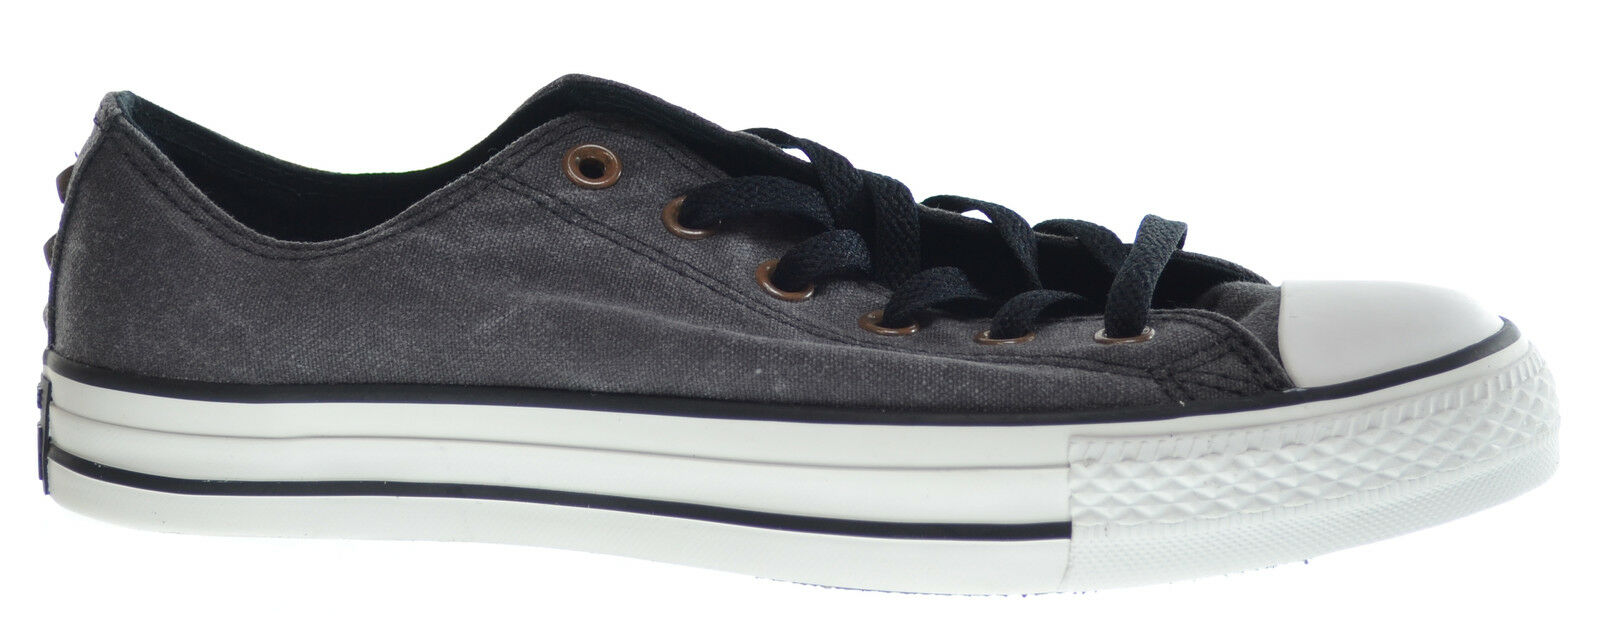 Converse CT Heel Stud OX Men's Sneakers Black 139763f